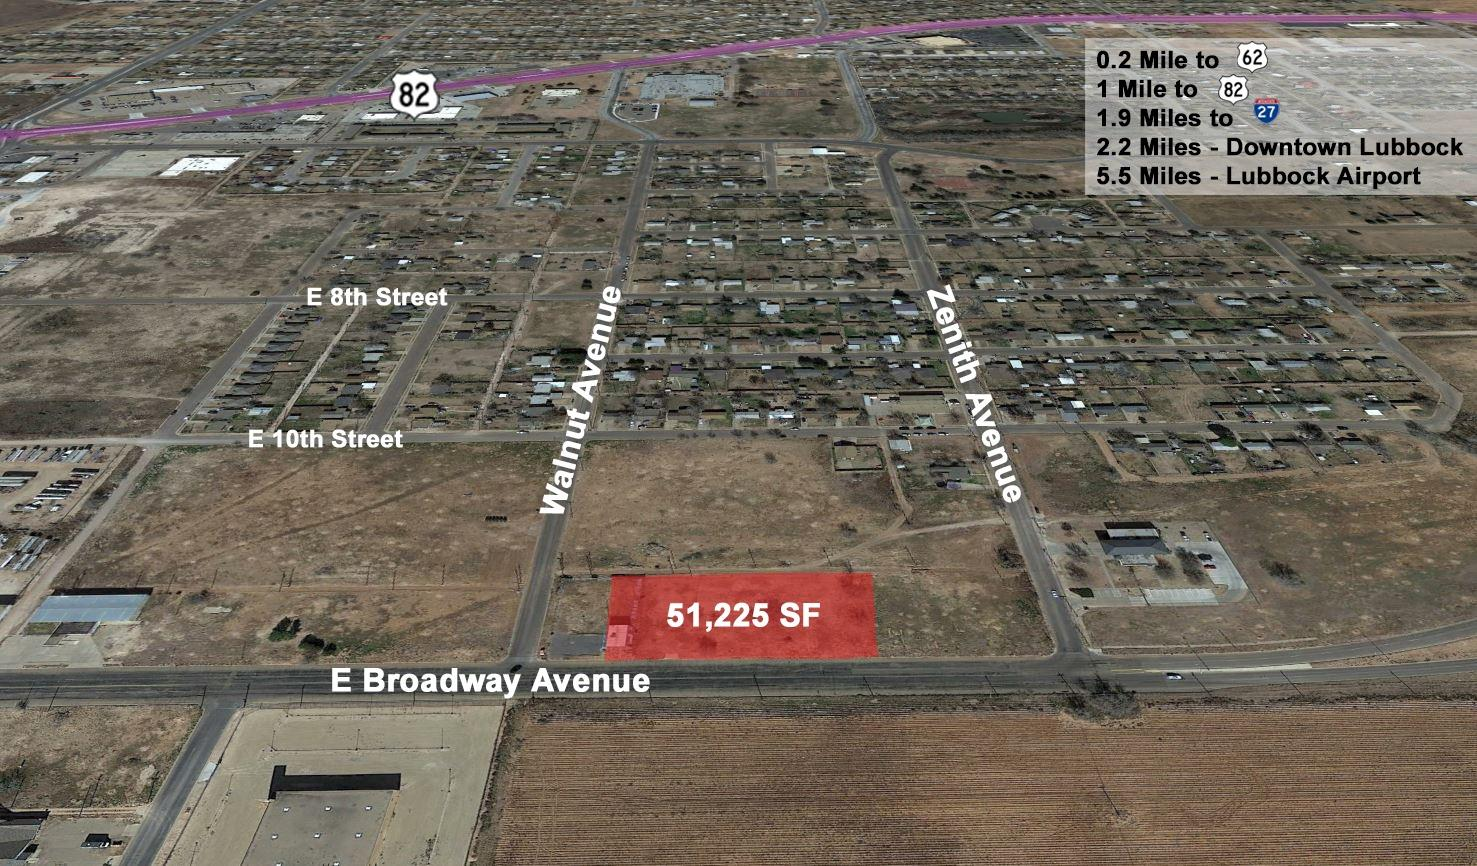 51,225 SF parcel of land available for sale. Just 3 Minutes From Downtown Lubbock; C-4 Zoning Allows for a Multitude of Uses; Market Lubbock East-Side; Grant Program Potentially Available to Offset Development Costs